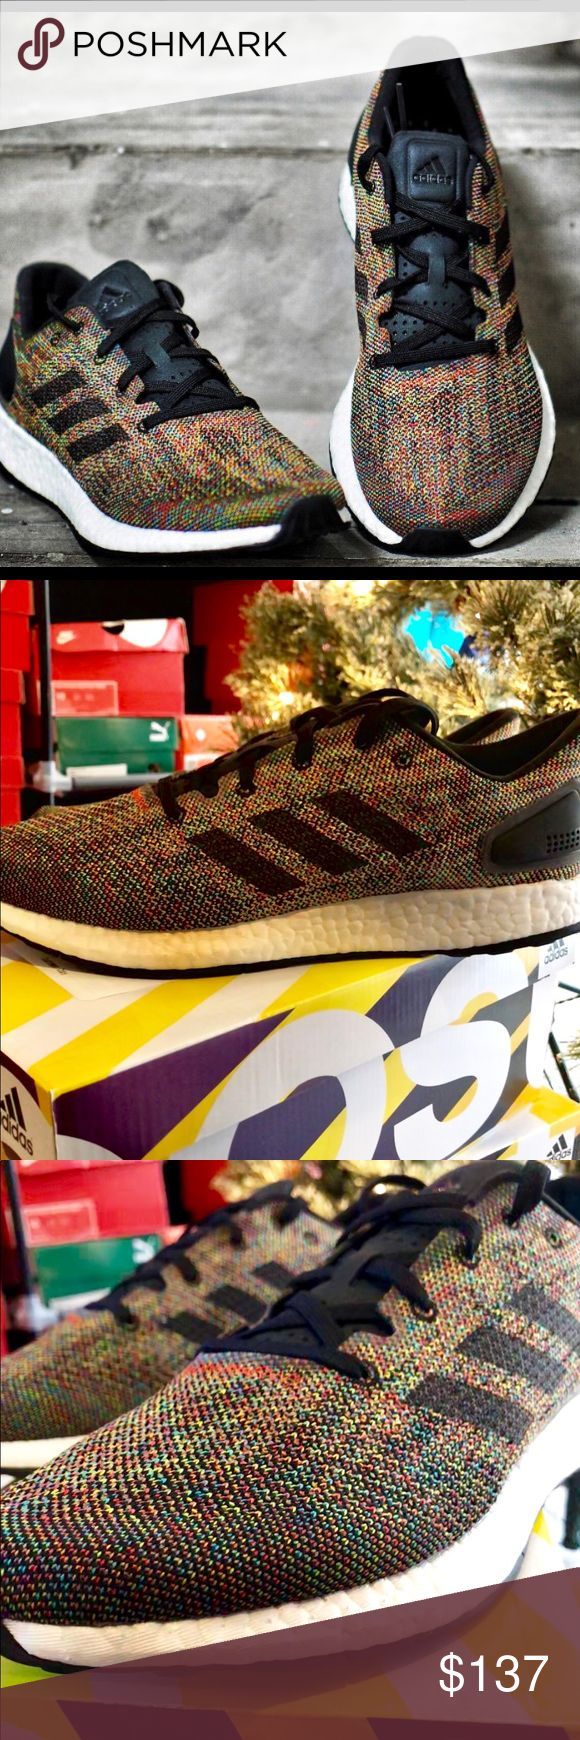 Adidas PureBOOST DPR LTD: MultiColor, DEADSTOCK🔥 Brand new with box, Adidas PureBOOST DPR Limited Edition. Currently stocked in Men's Sizes 9, 10, & 12. Adidas combination of performance and aesthetics here is a lot like Nike's Flyknit Racer or the Flyknit Streak. Great price so take advantage!!!  MSRP: $170 adidas Shoes Sneakers